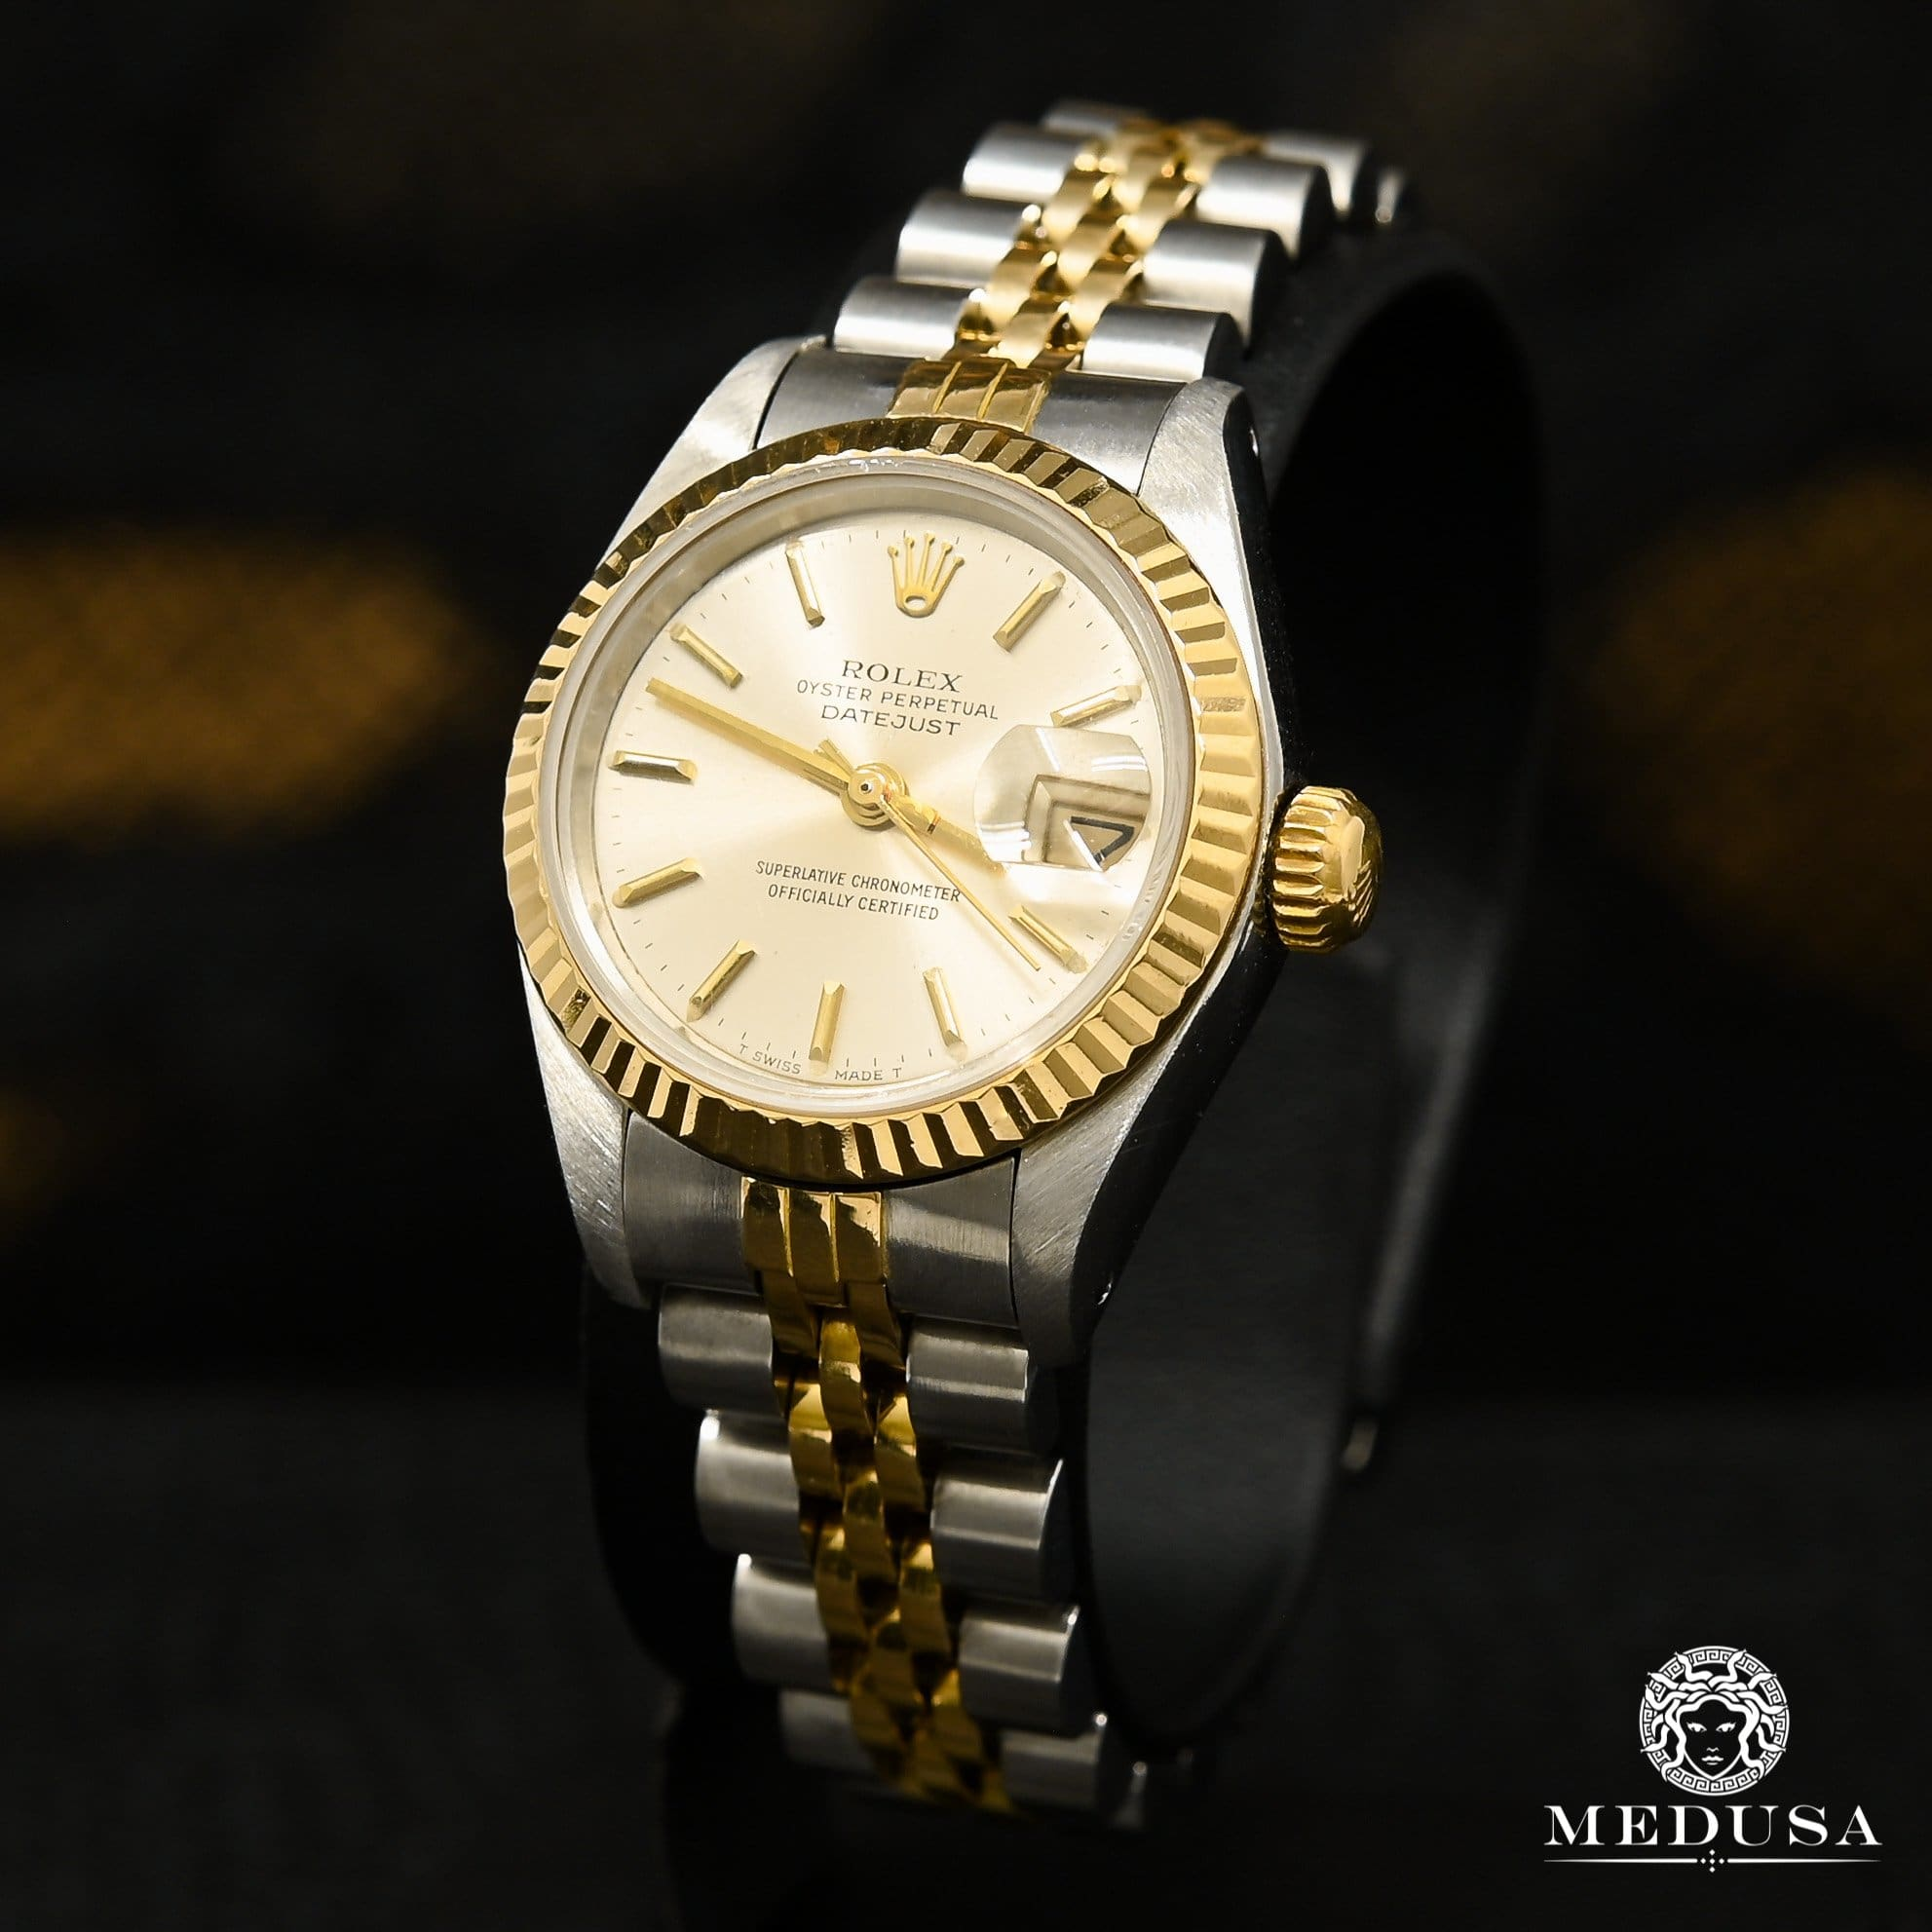 Montre Rolex | Montre Femme Rolex Datejust 26mm - Silver Or 2 Tons